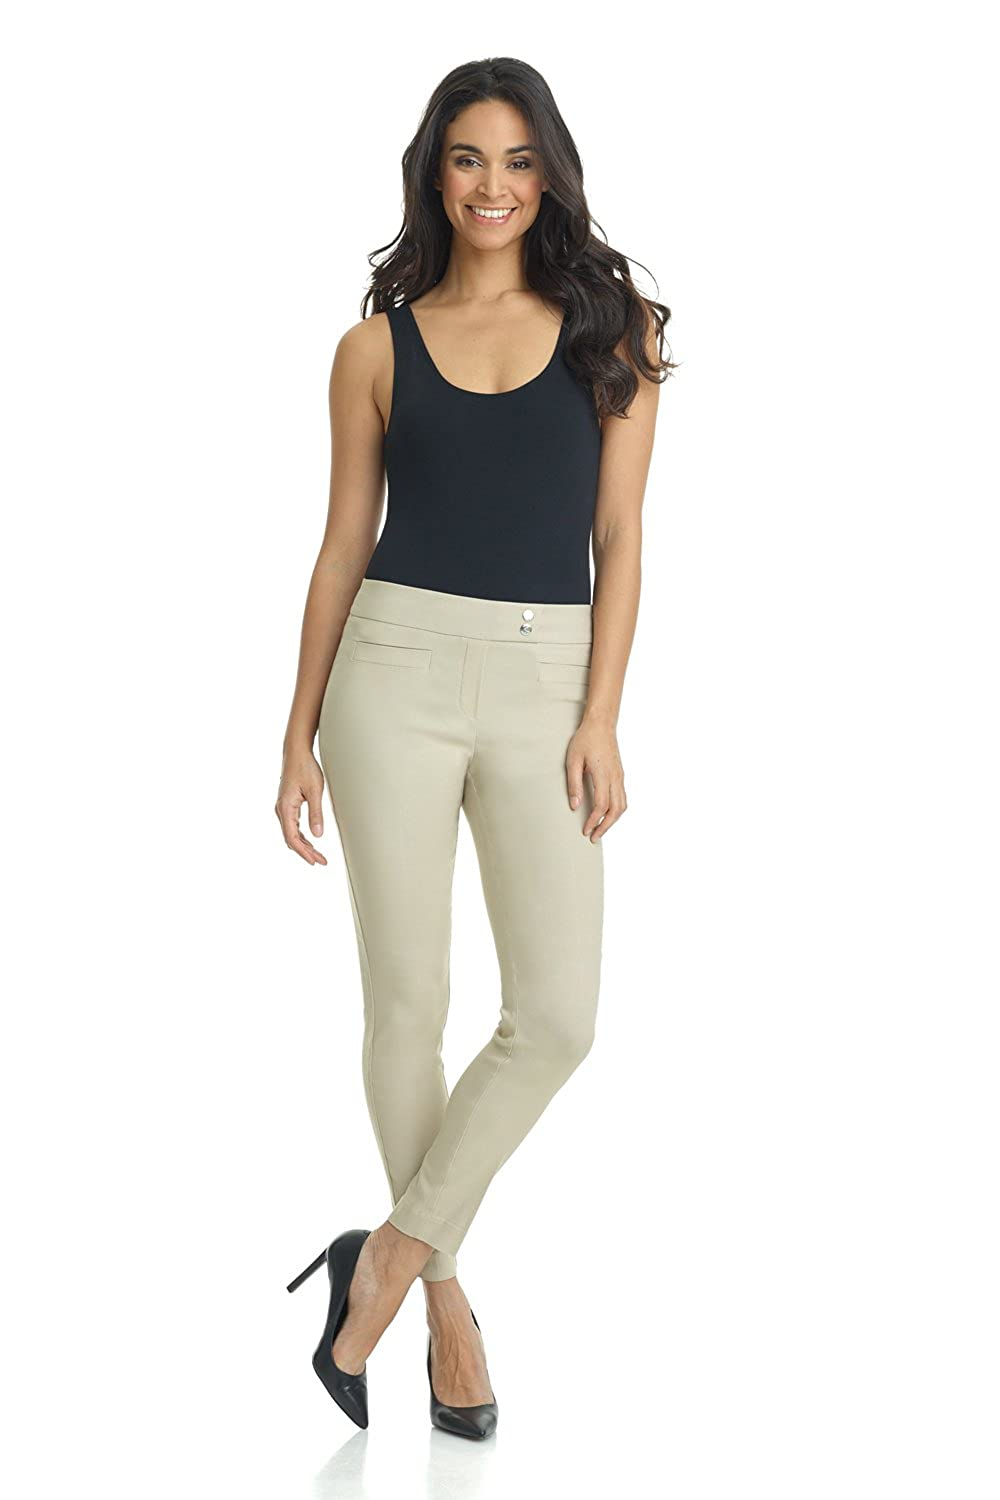 Rekucci Womens Ease in to Comfort Slim Ankle Pant with Snaps